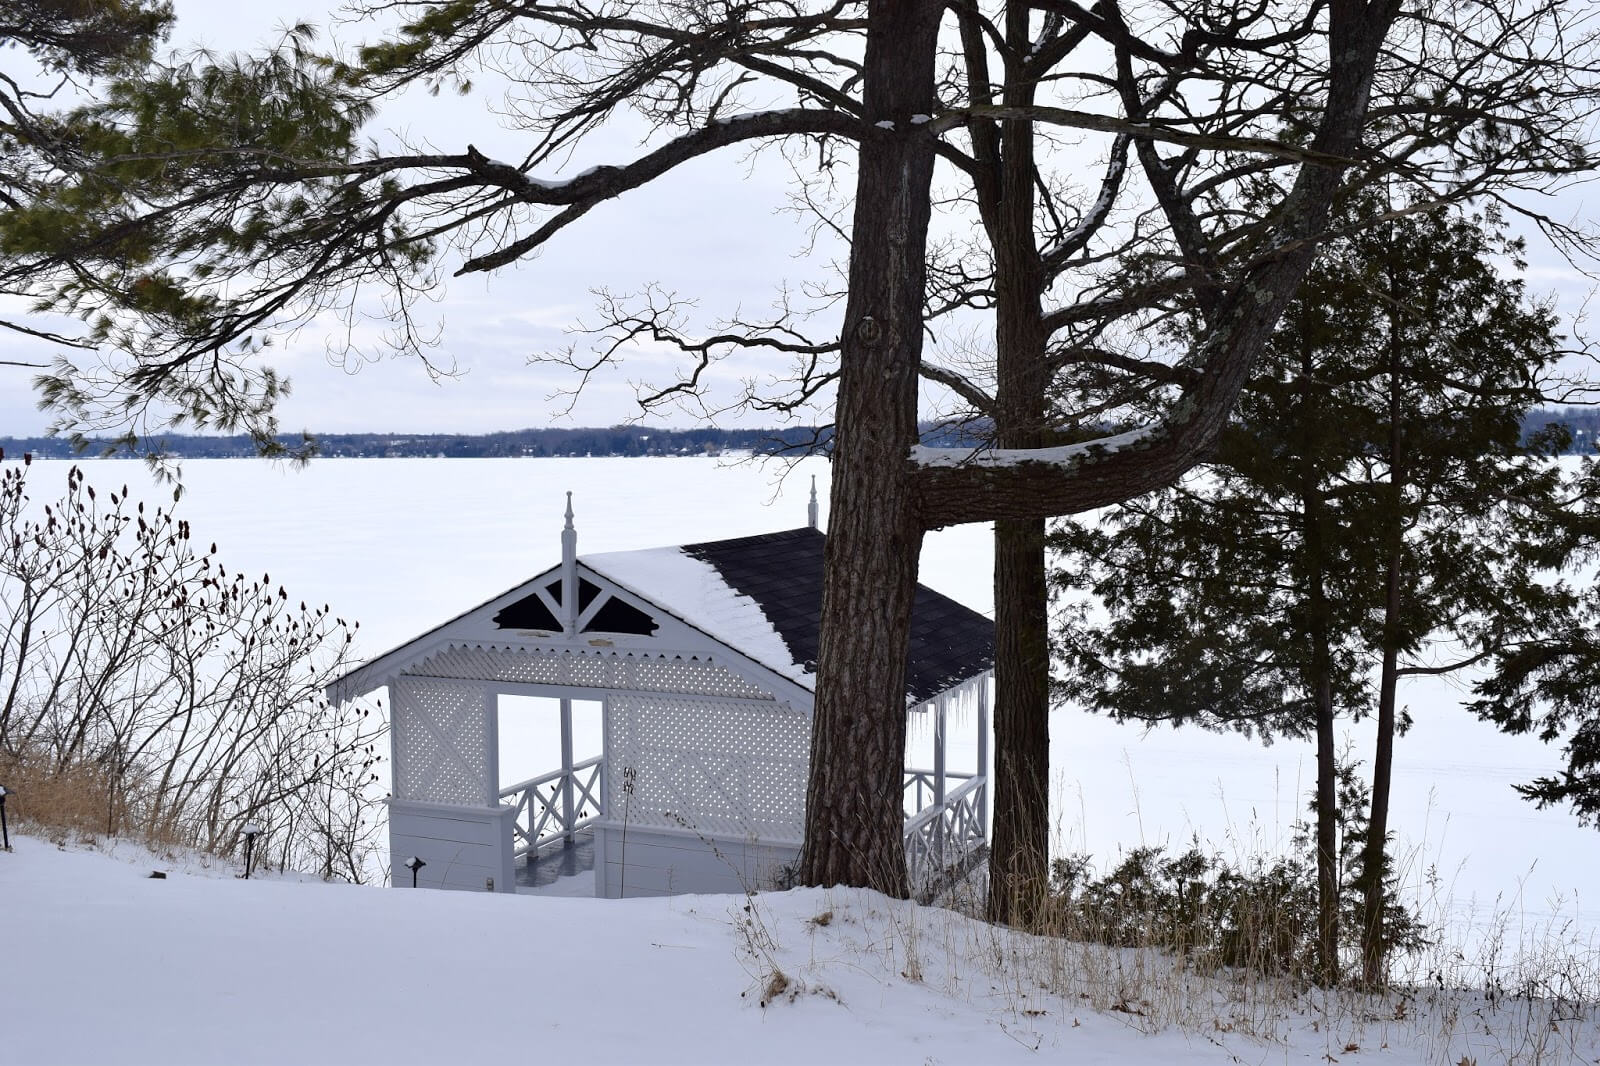 A boathouse on a frozen lake in the winter time